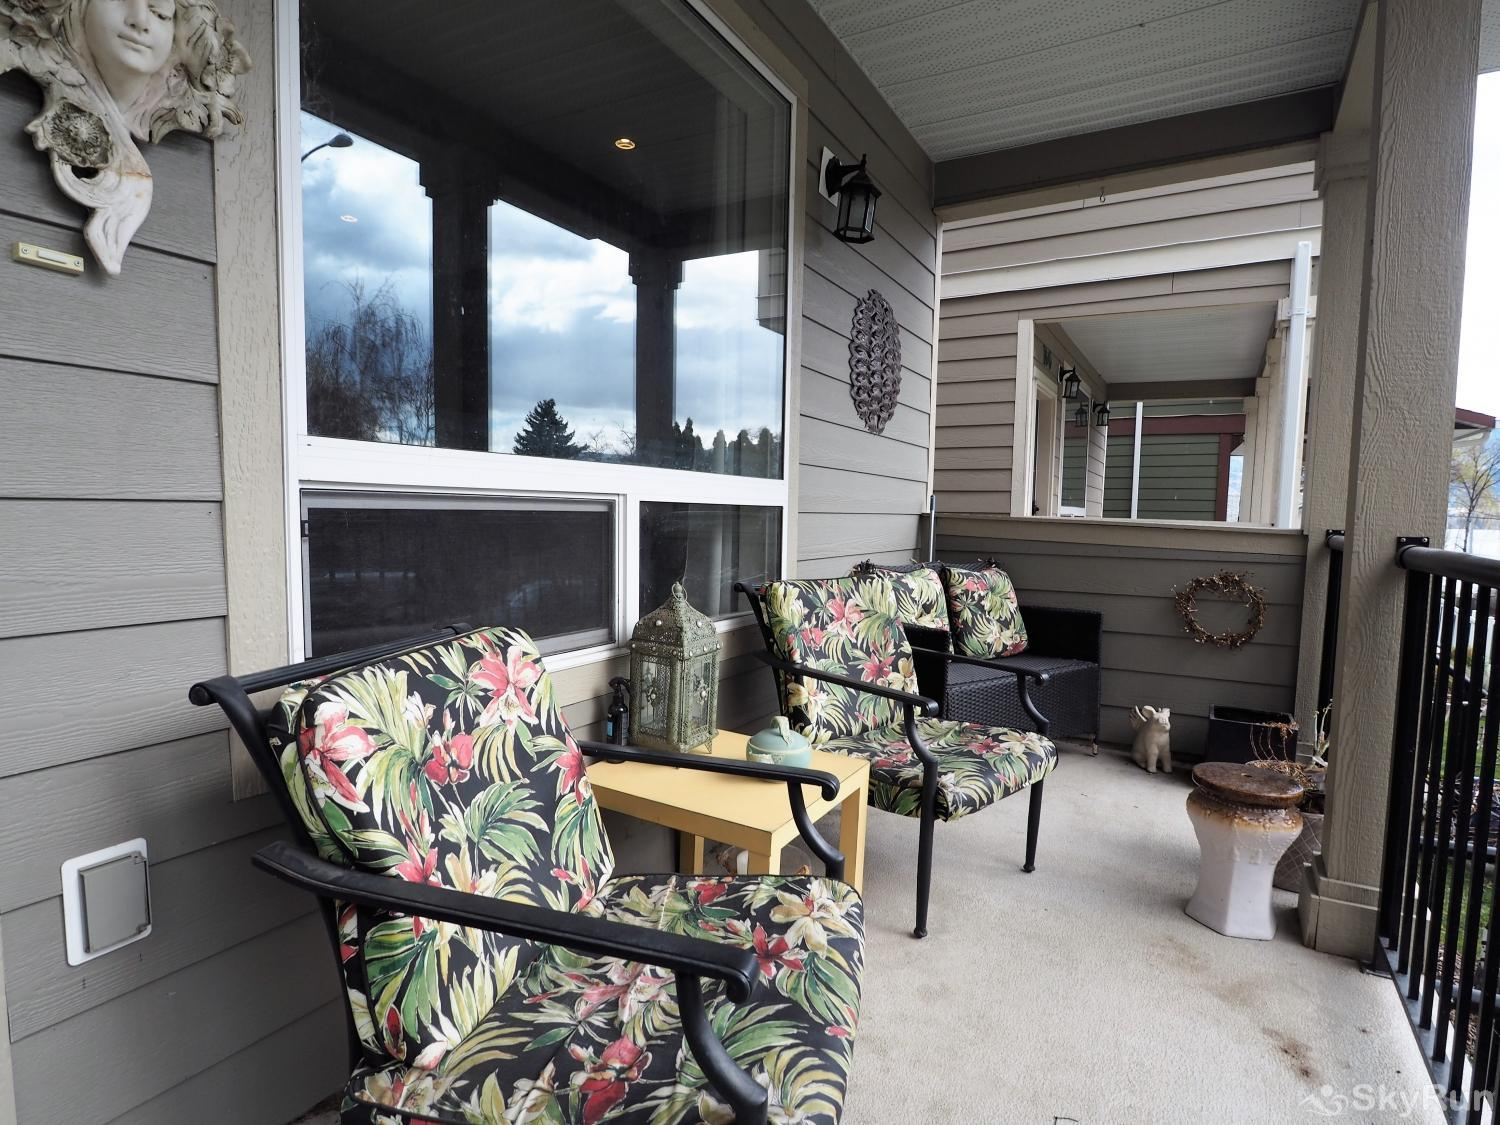 Old Summerland 3 bedroom home Great porch to enjoy morning coffee and take in the view